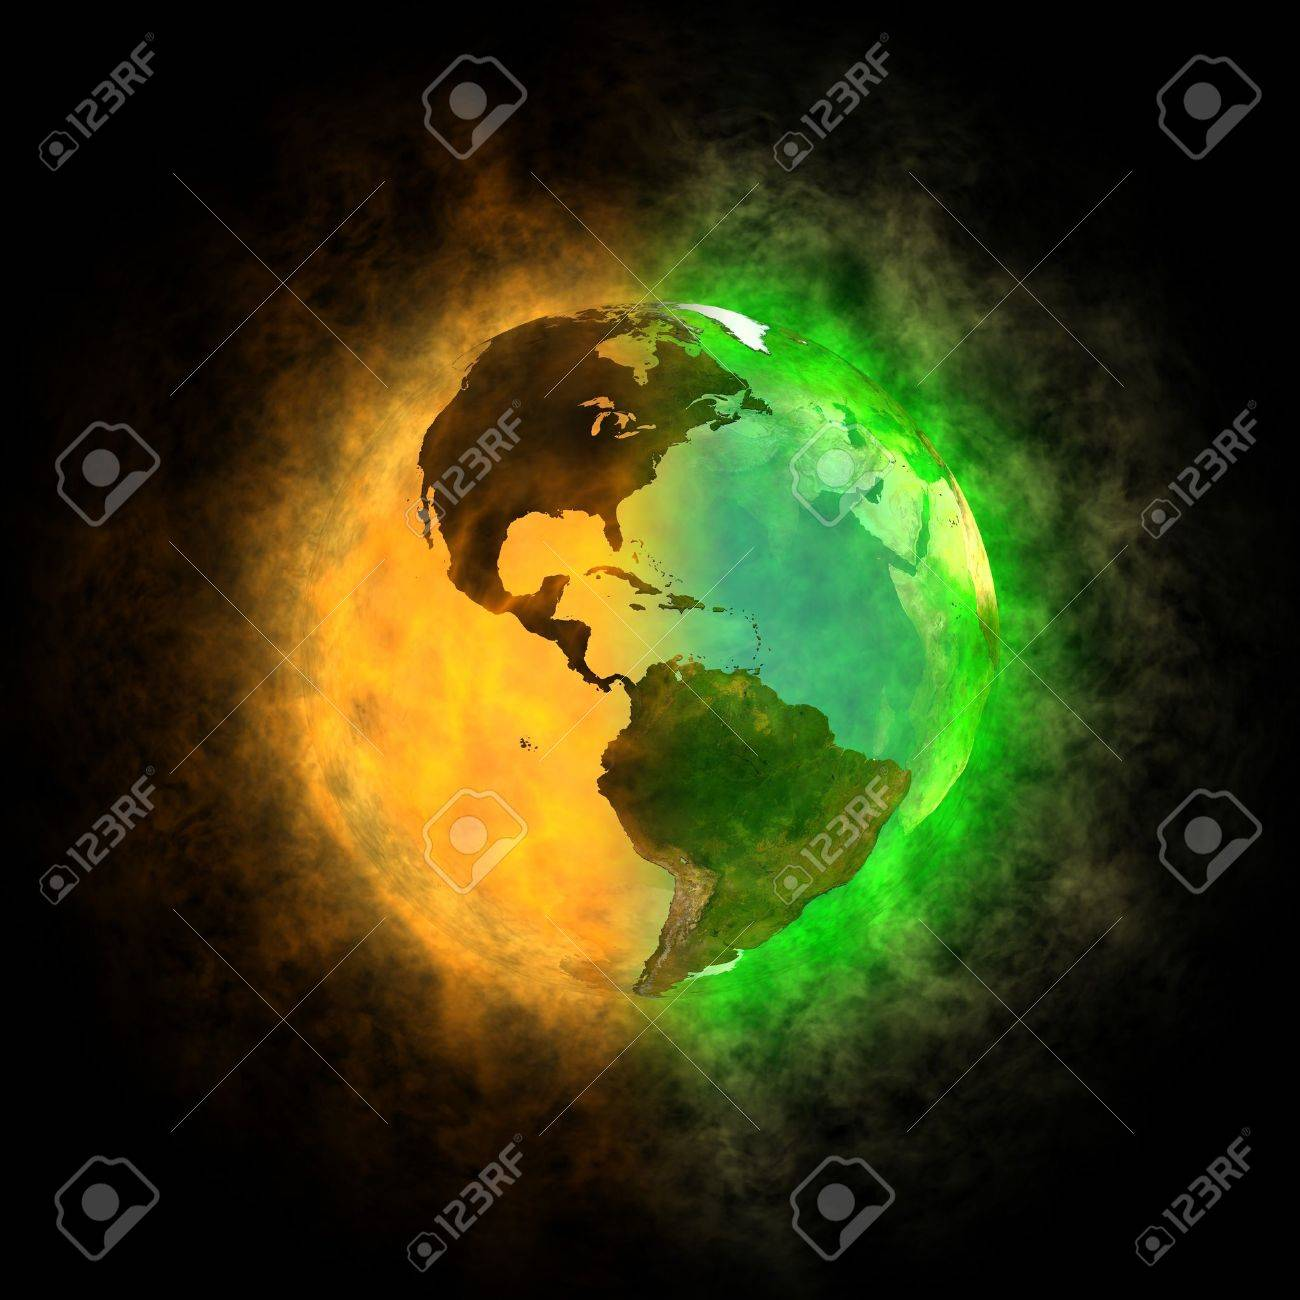 2012 - Transformation of Earth - America Stock Photo - 13446770